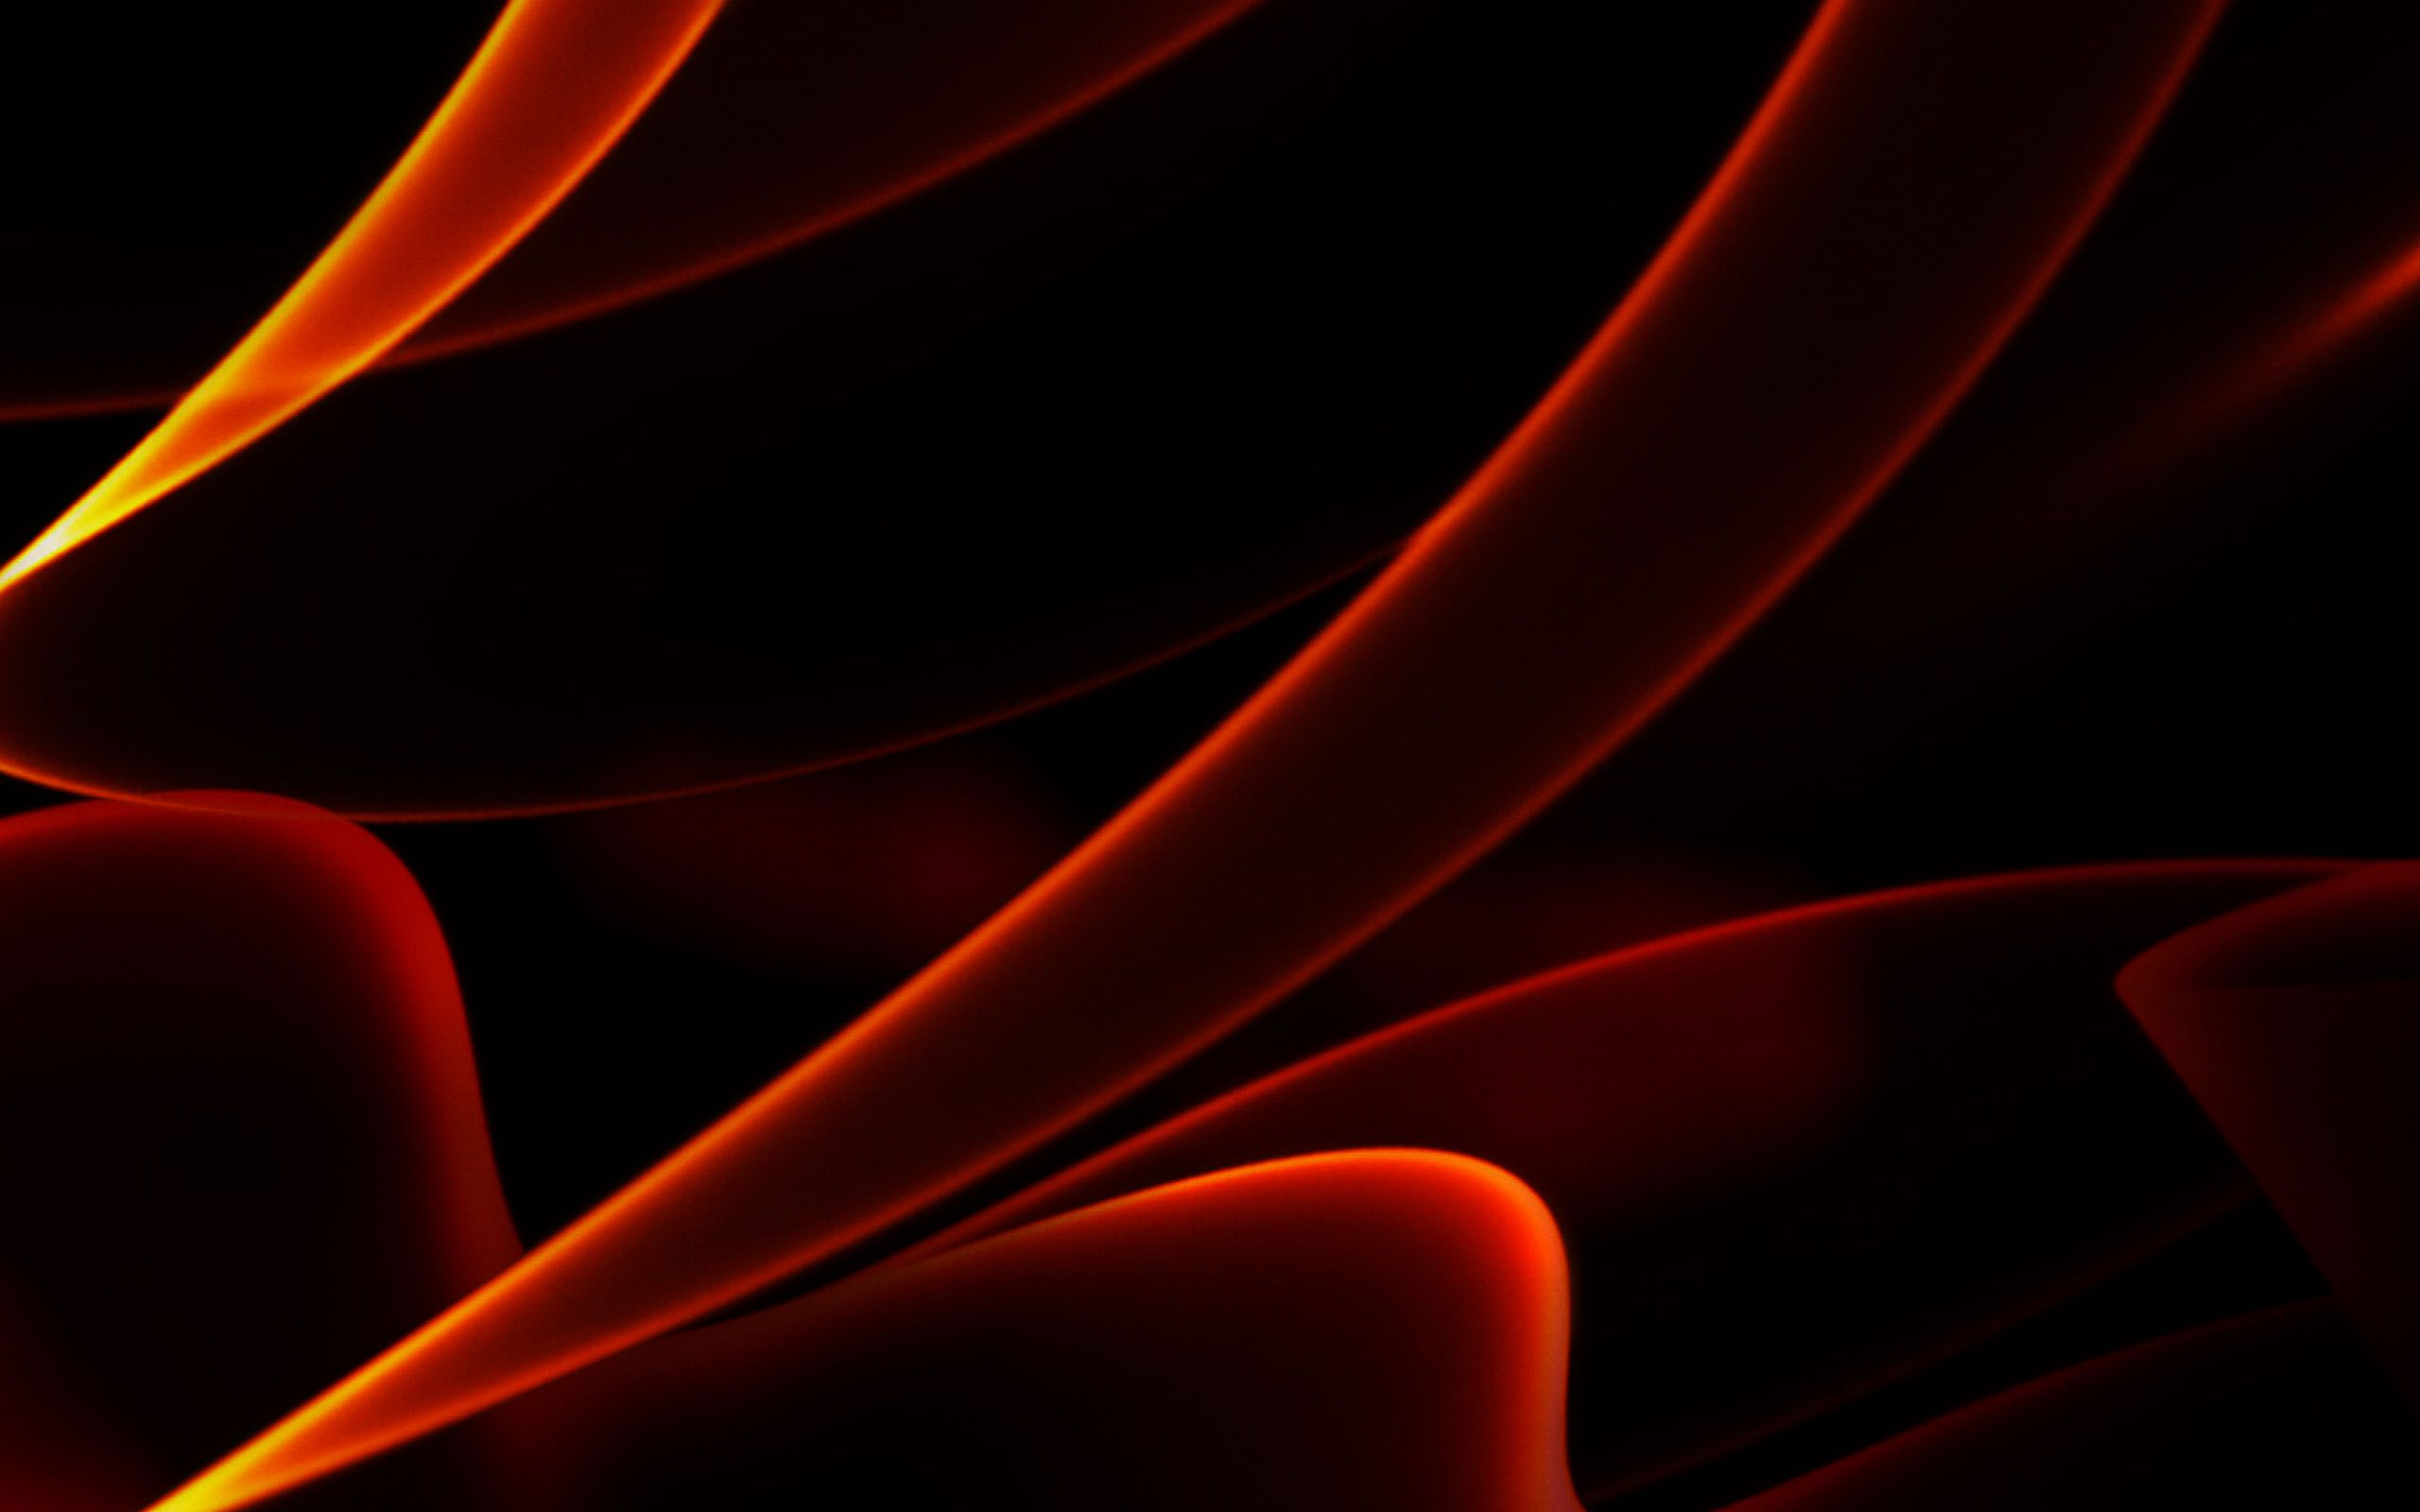 Custom HD 48 Black Abstract Wallpapers Collection 2560x1600